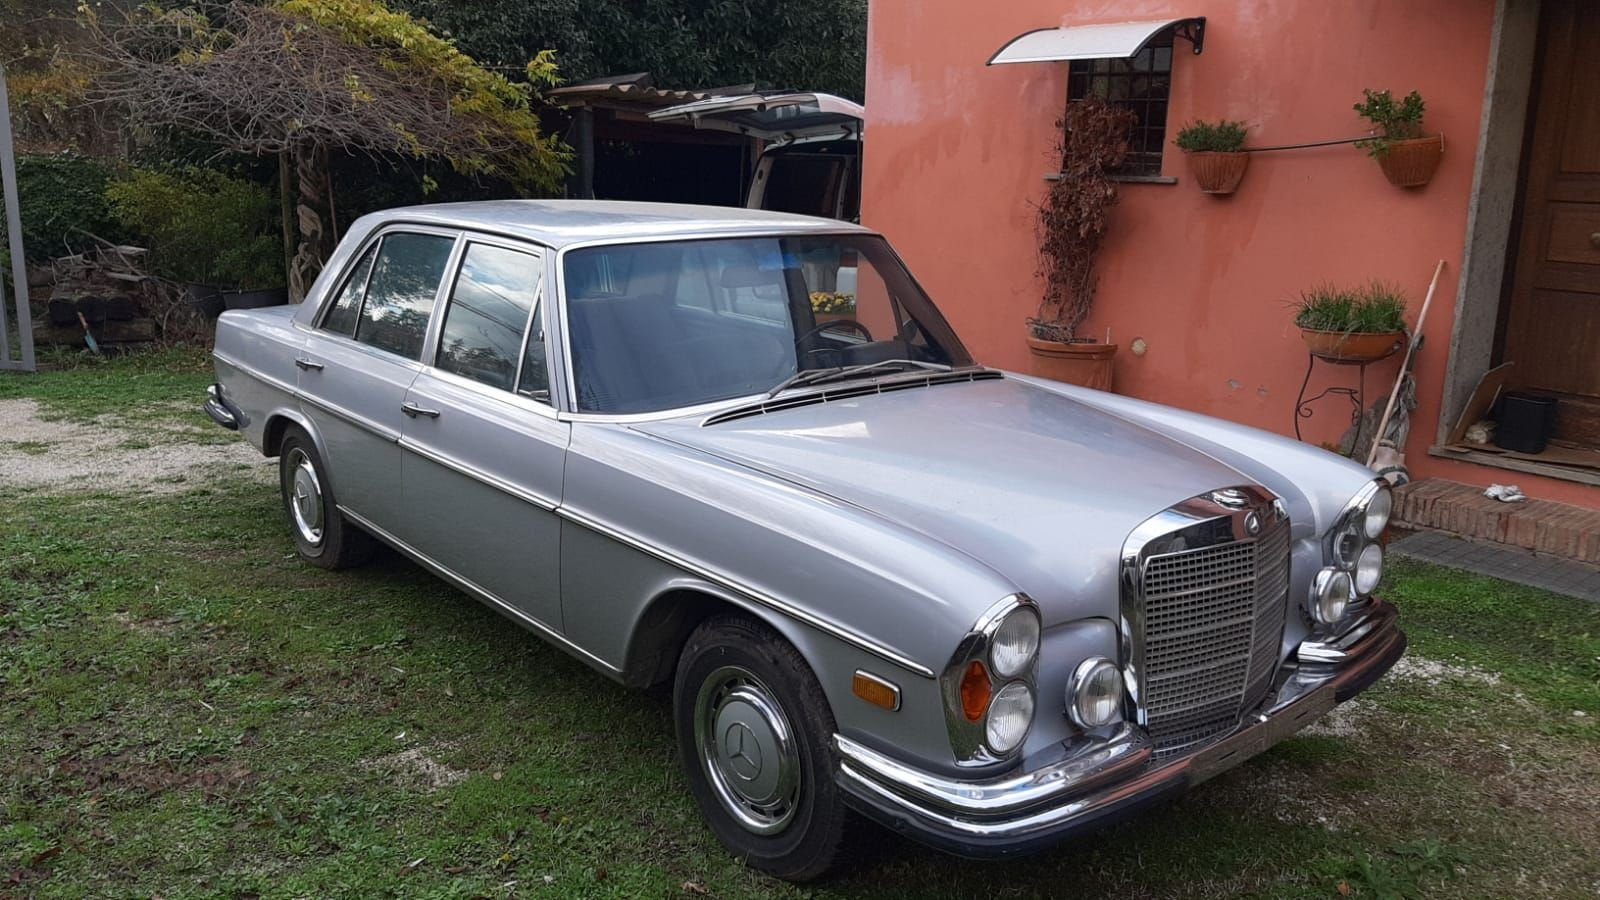 1972 RARE MERCEDES BENZ W108 280 SE  3.5 Saloon LHD For Sale (picture 1 of 12)